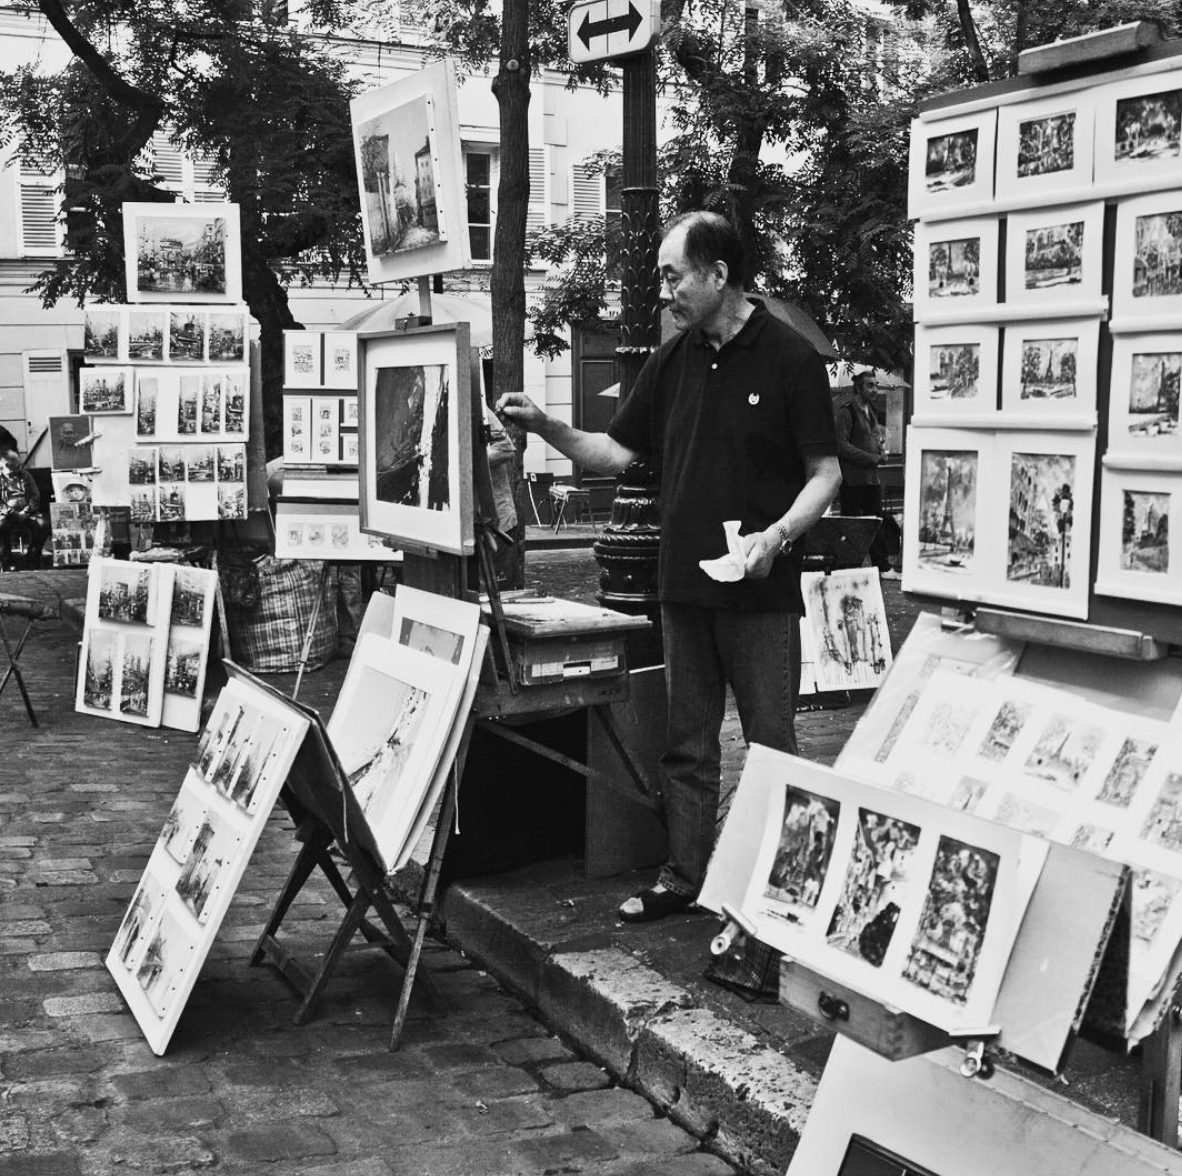 Artist on the streets of montmartre in Paris, France